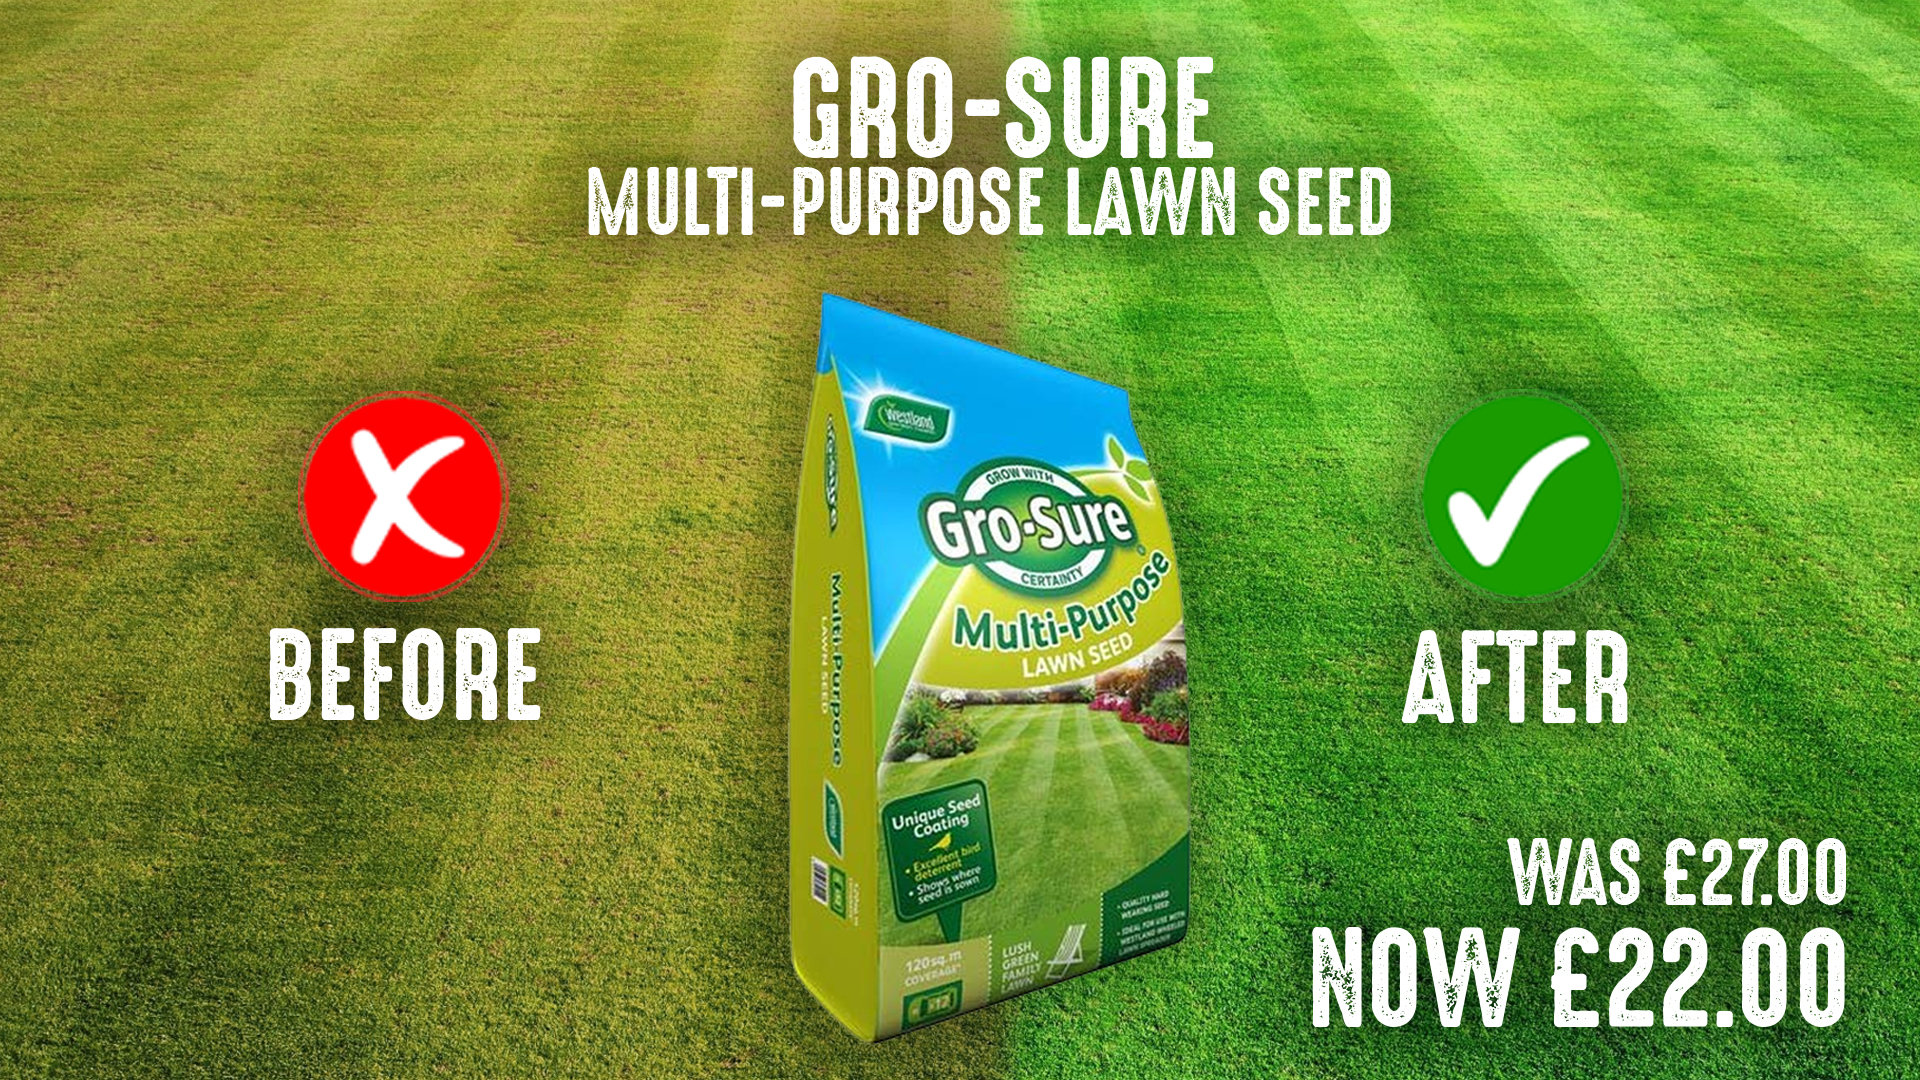 Gro-Sure Lawn Seed